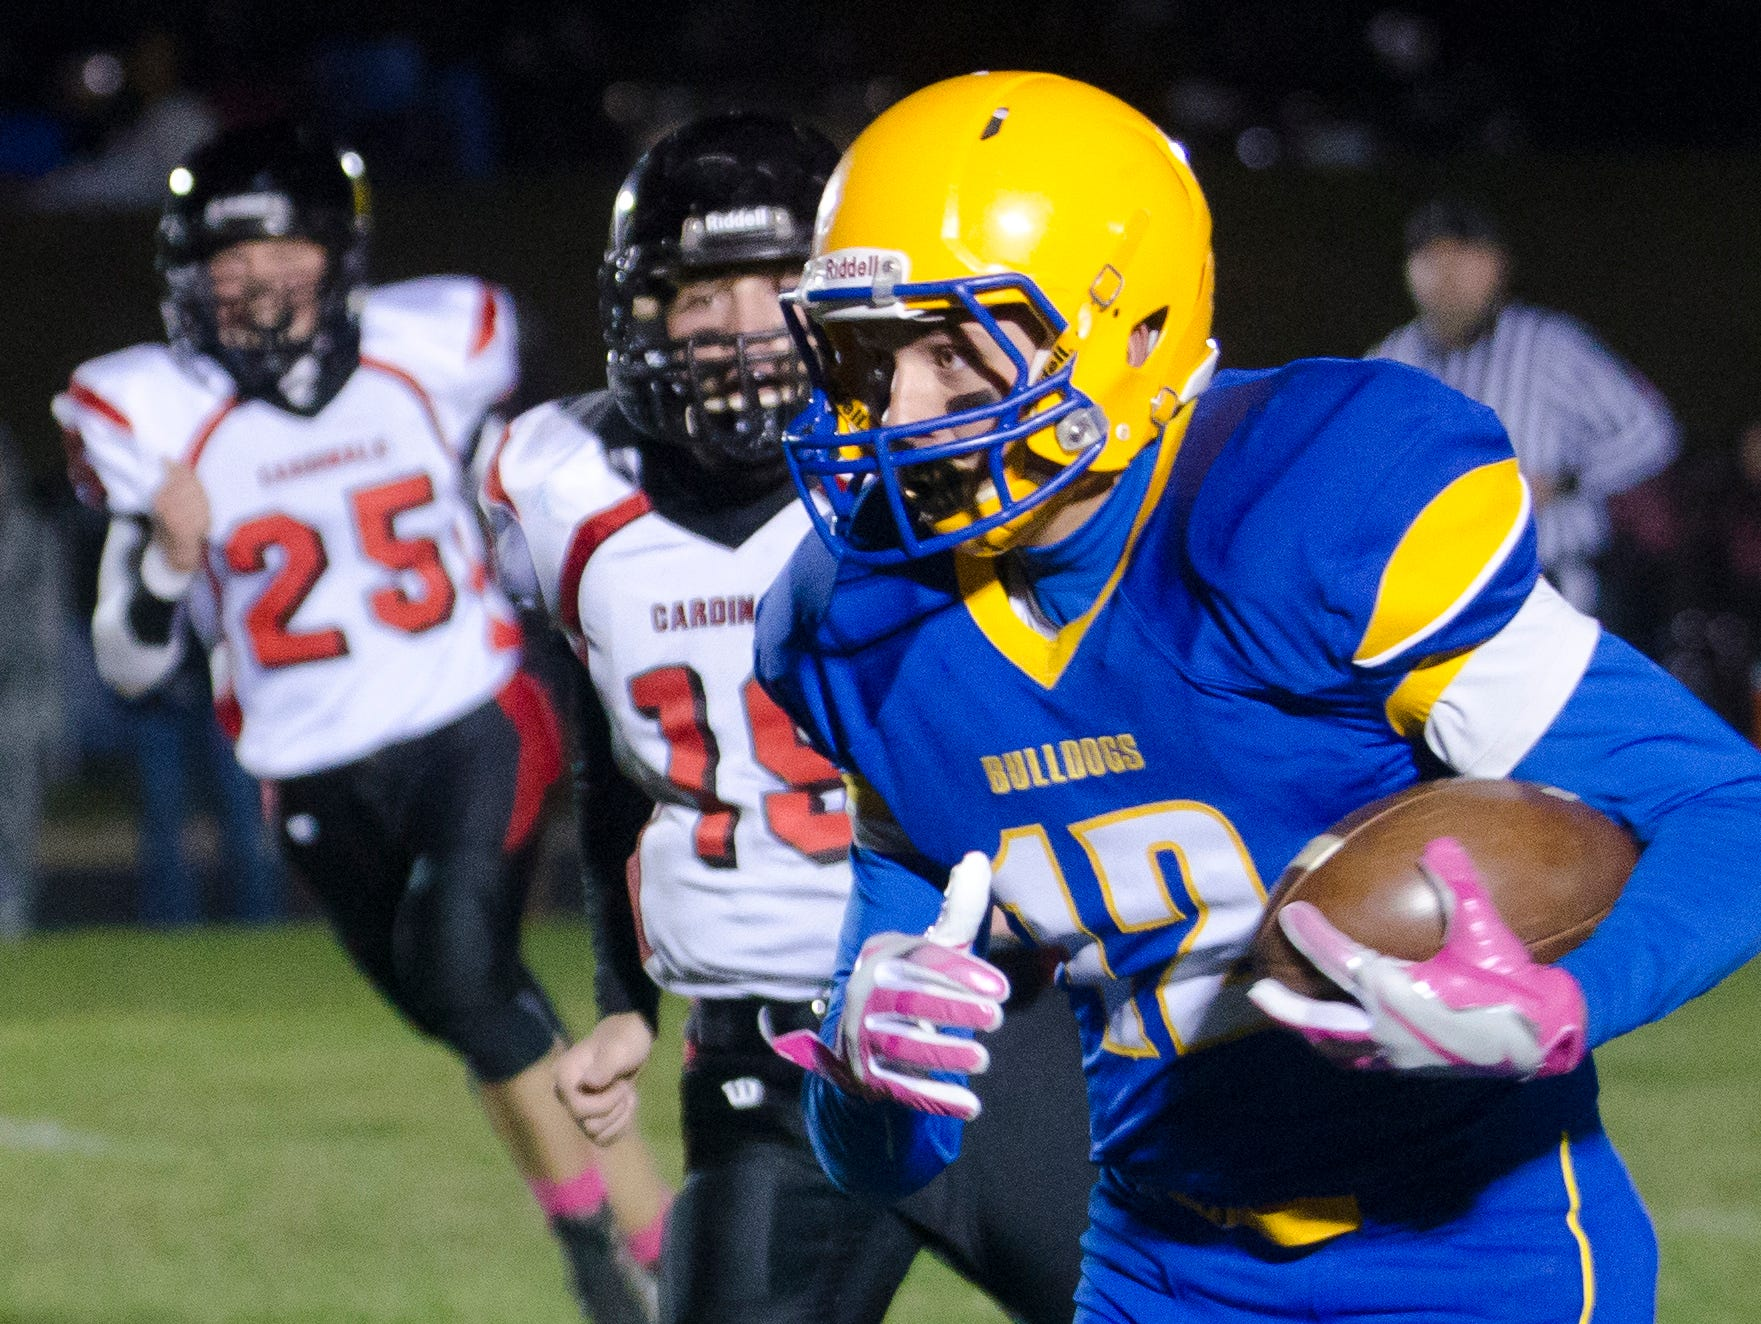 Jon Wilhelmsen of Baltic carries the ball Tuesday, Oct. 25, past Deuel defenders Tanner Troska (19) and Tristen Kwasniewski (25) in the first round of the Class 9AA playoffs at Baltic.